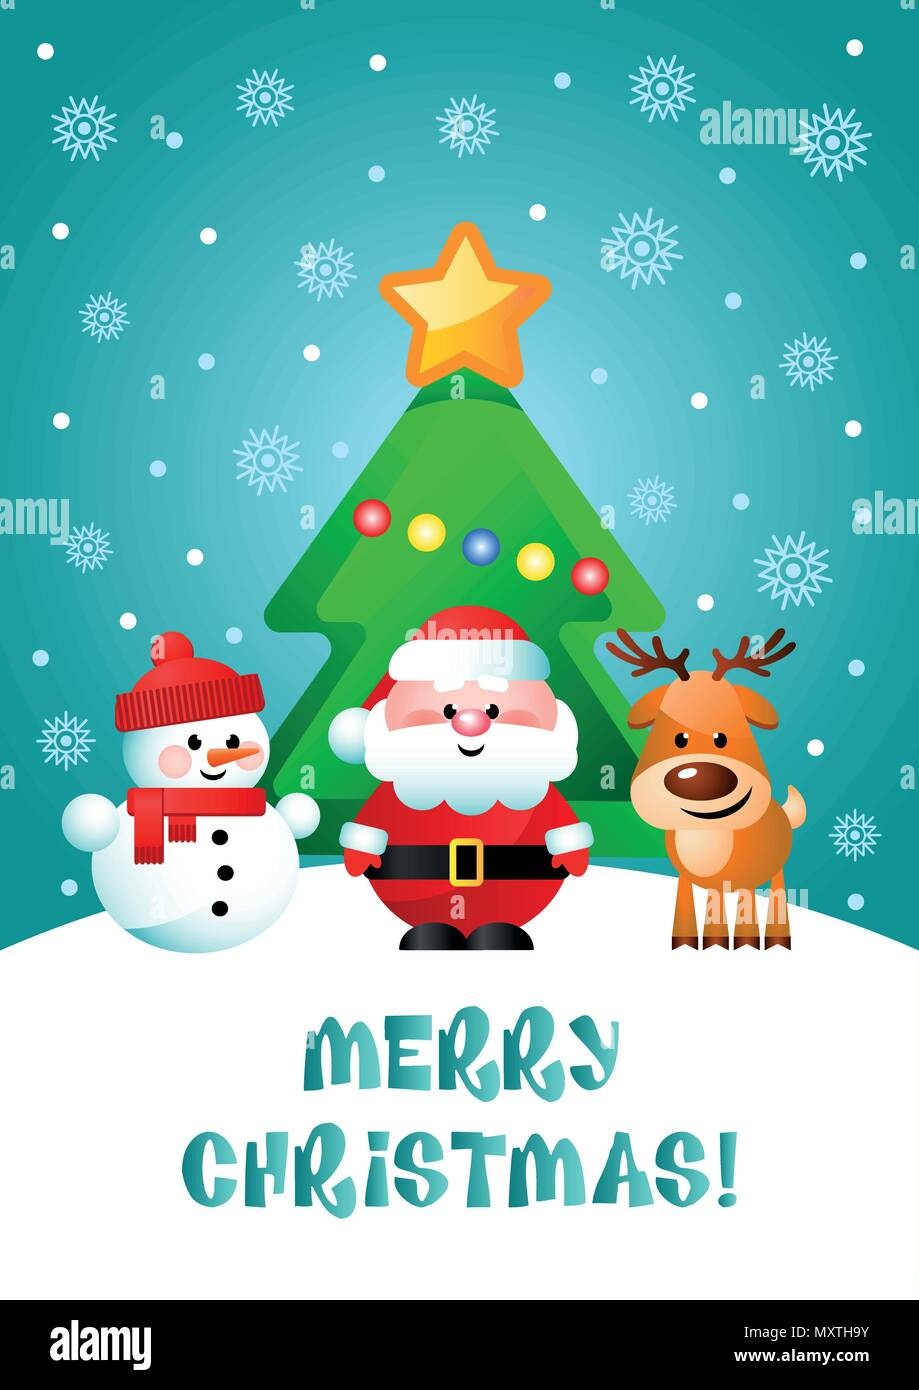 Merry Christmas! Greeting card with cute cartoon characters. Santa ...